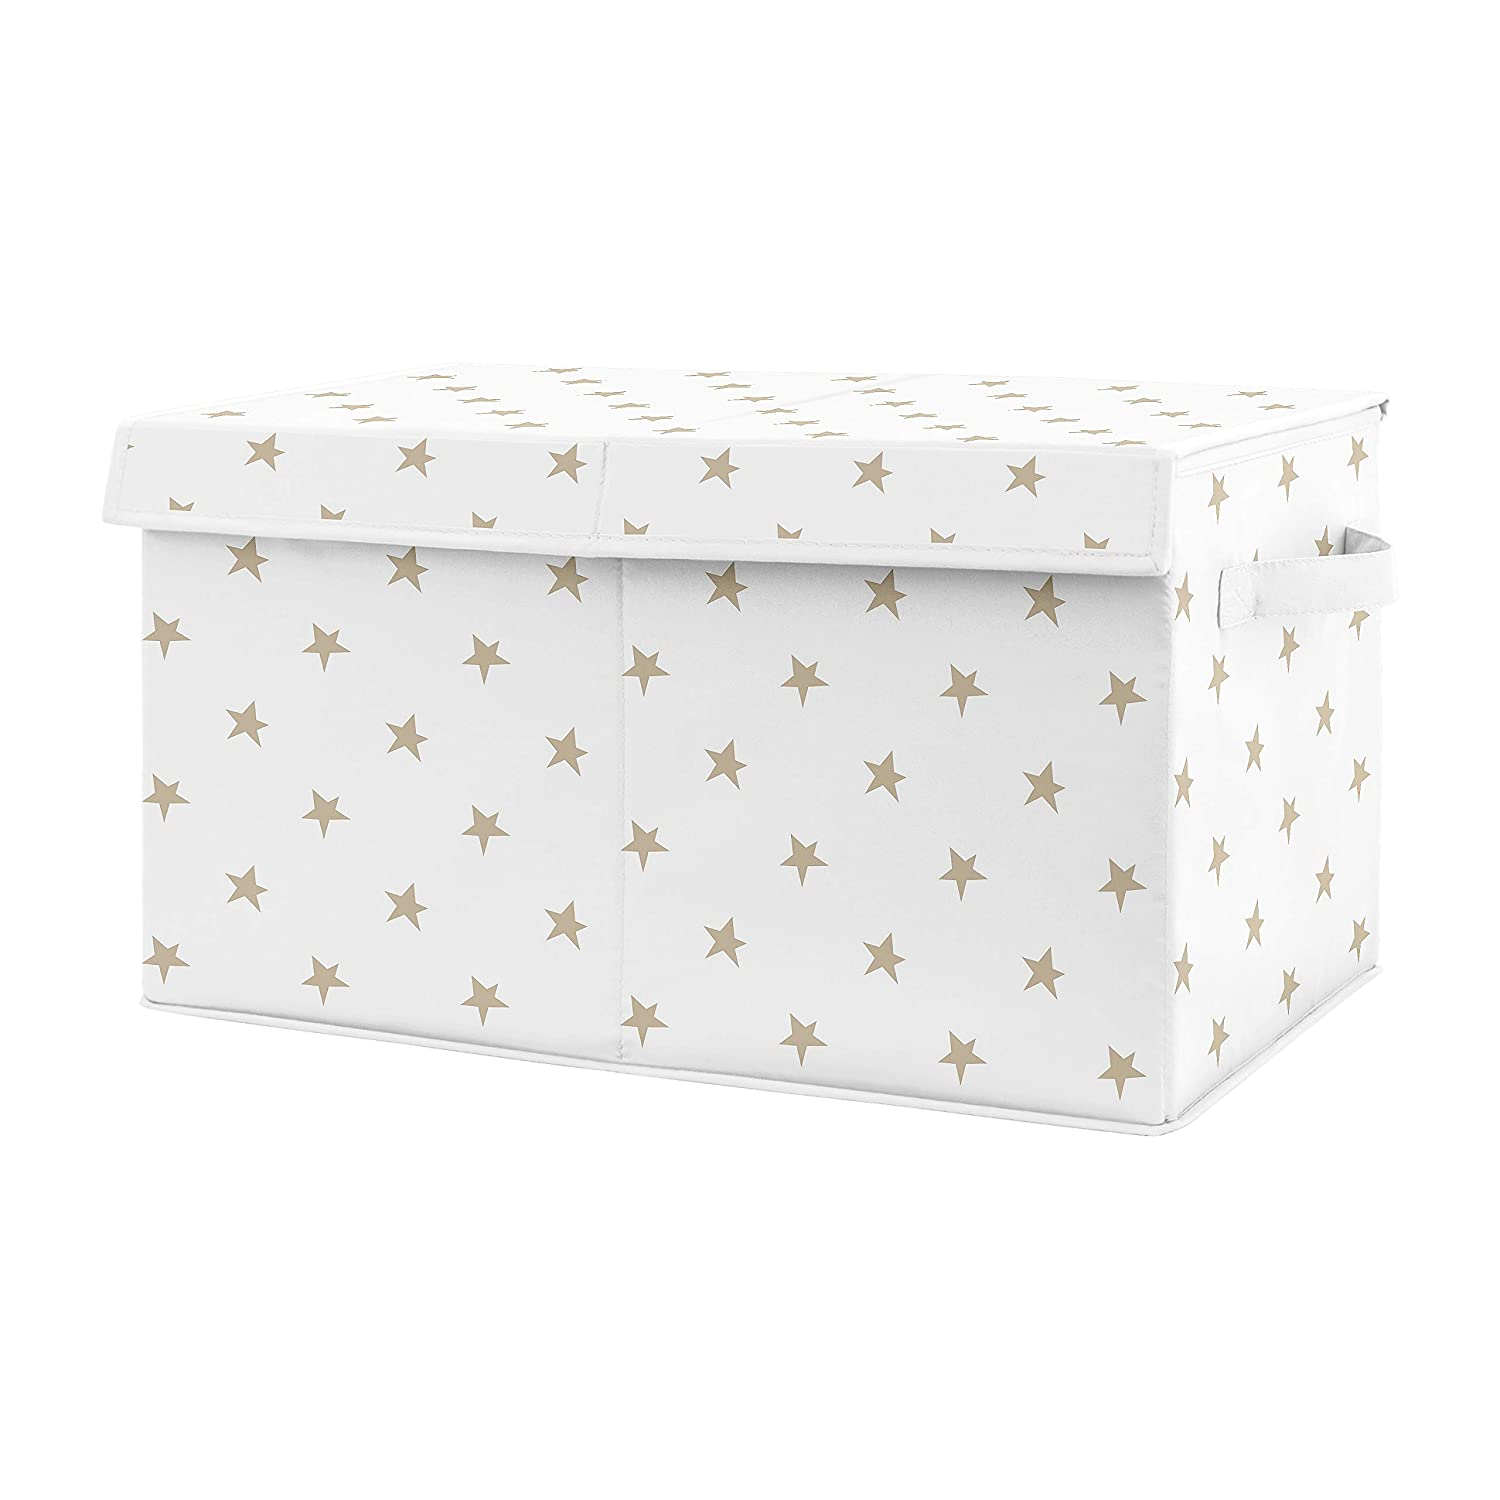 Sweet Jojo Designs Gold and White Celestial Star Girl Small Fabric Toy Bin Storage Box Chest for Baby Nursery or Kids Room